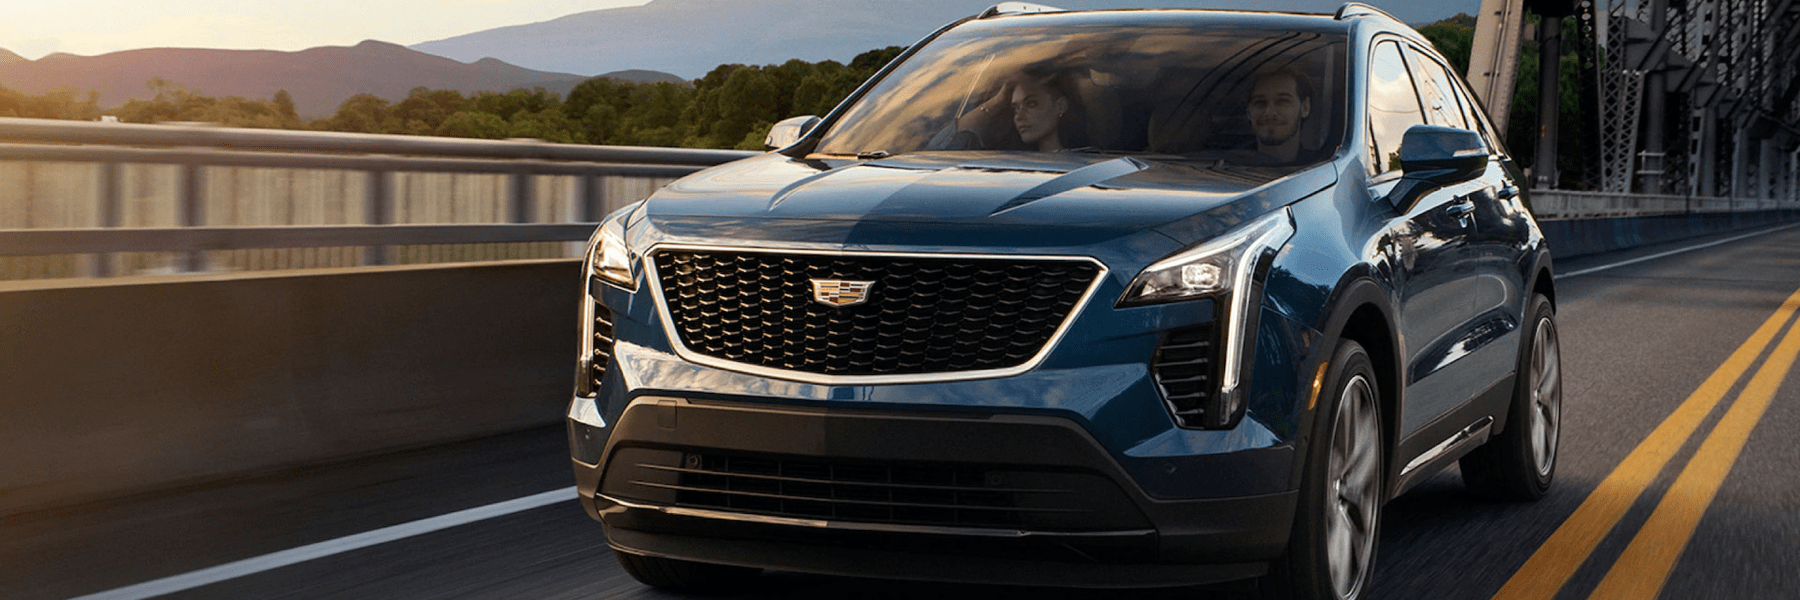 2020 Cadillac XT4 drives over bridge